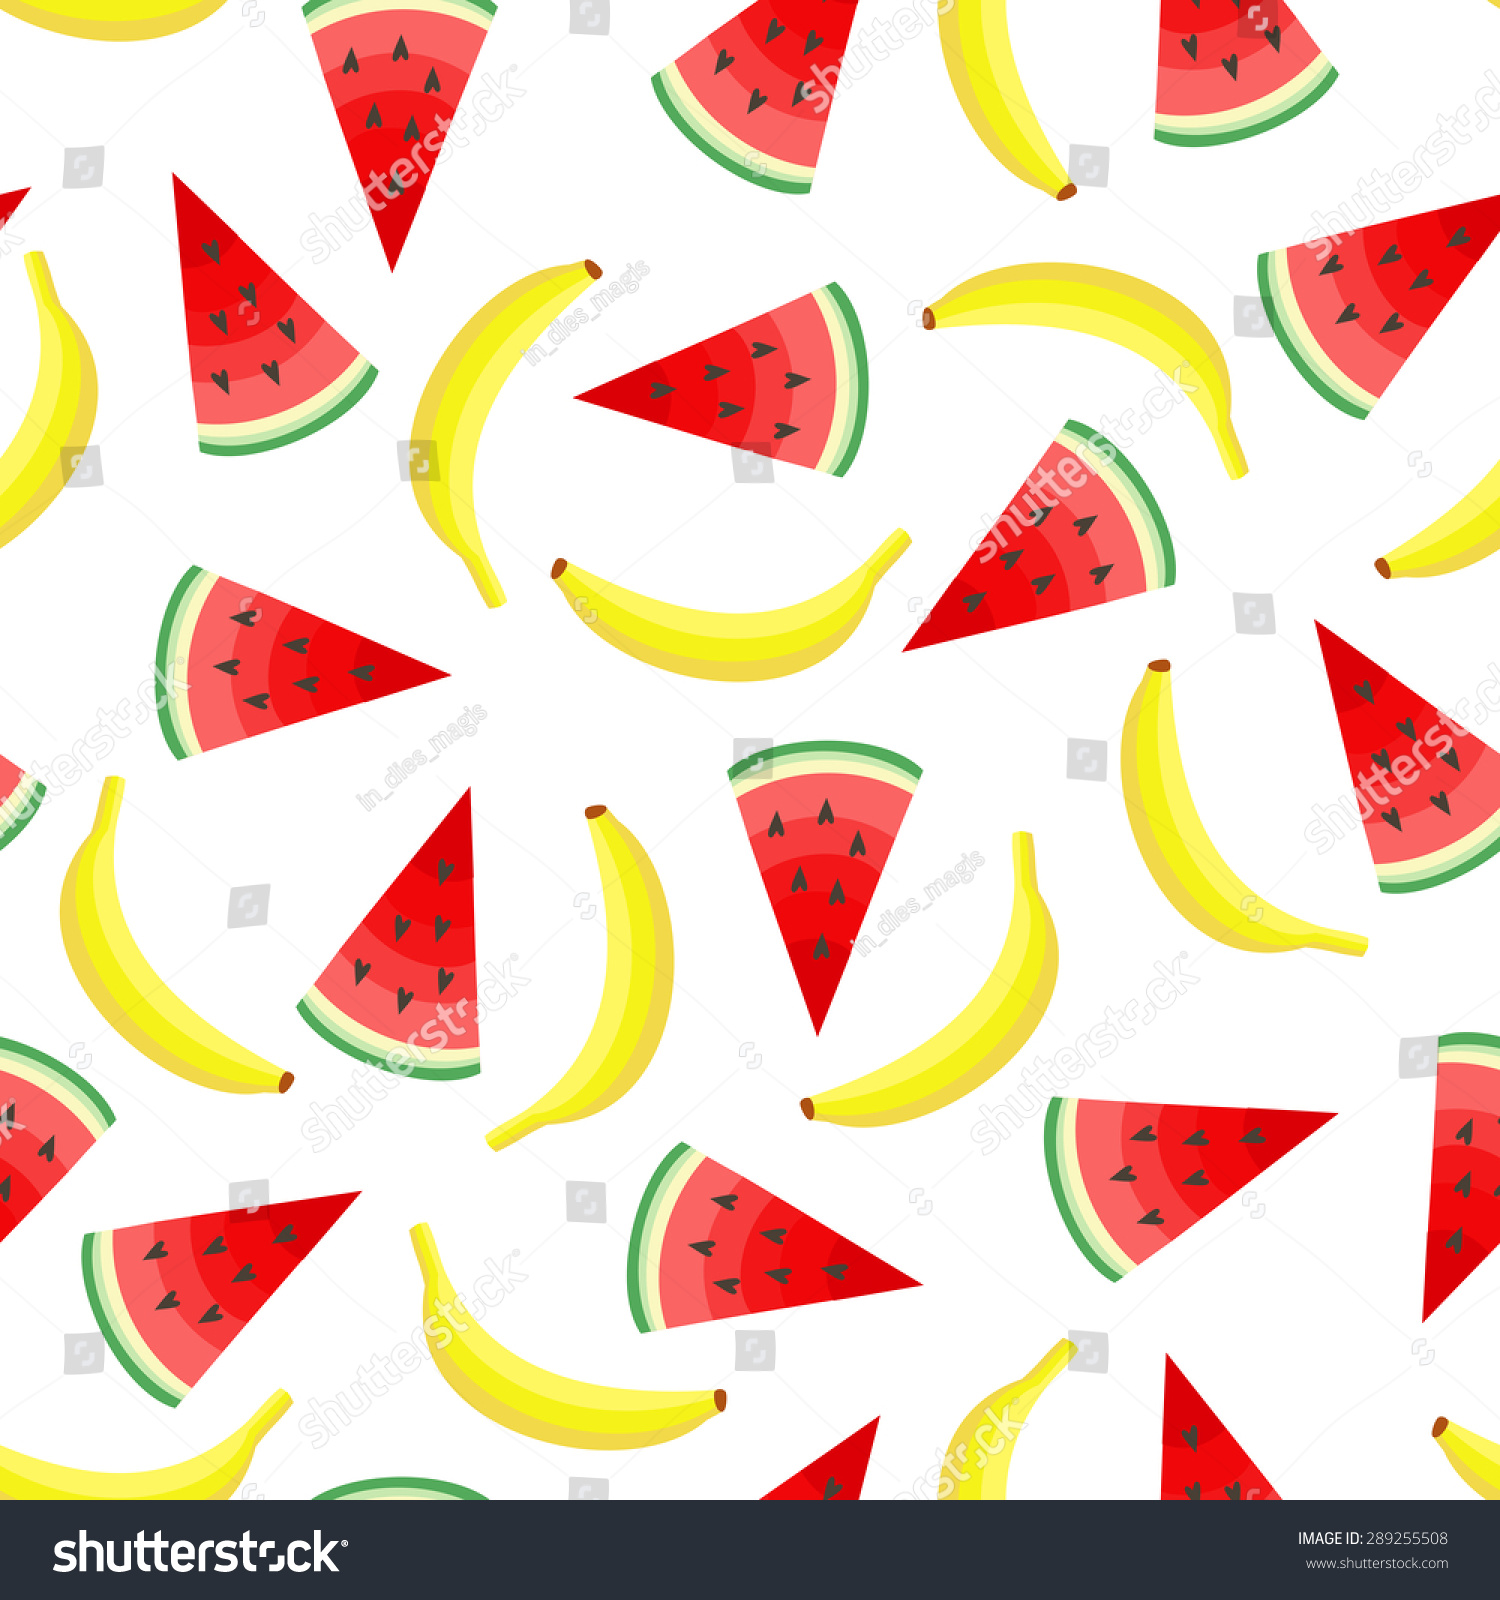 Download Wallpaper 1600x1200 Watermelon, Yellow, Water 1600x1200 ...